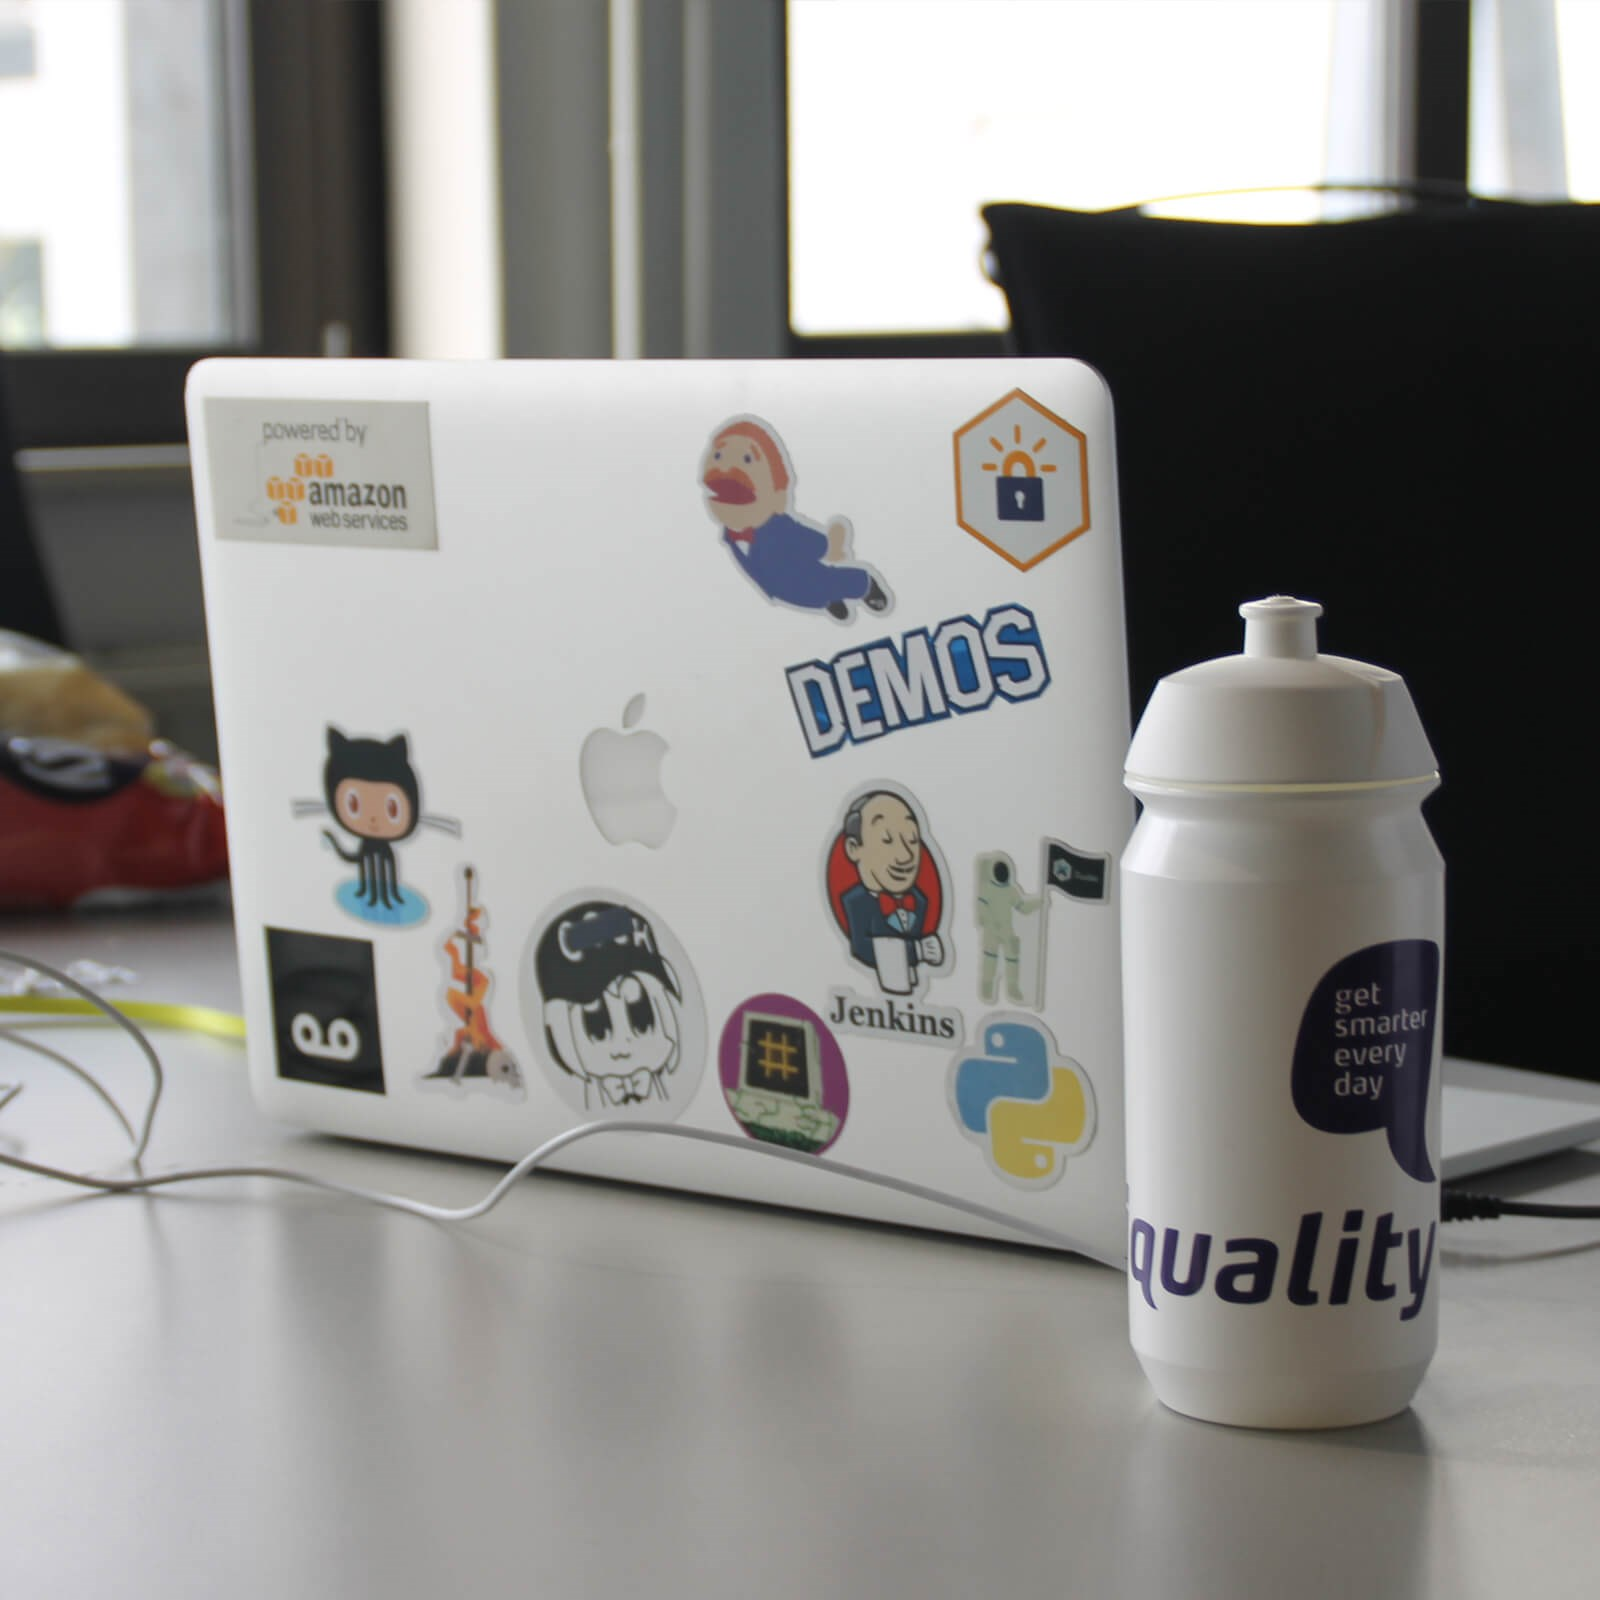 Laptop and Iquality bottle